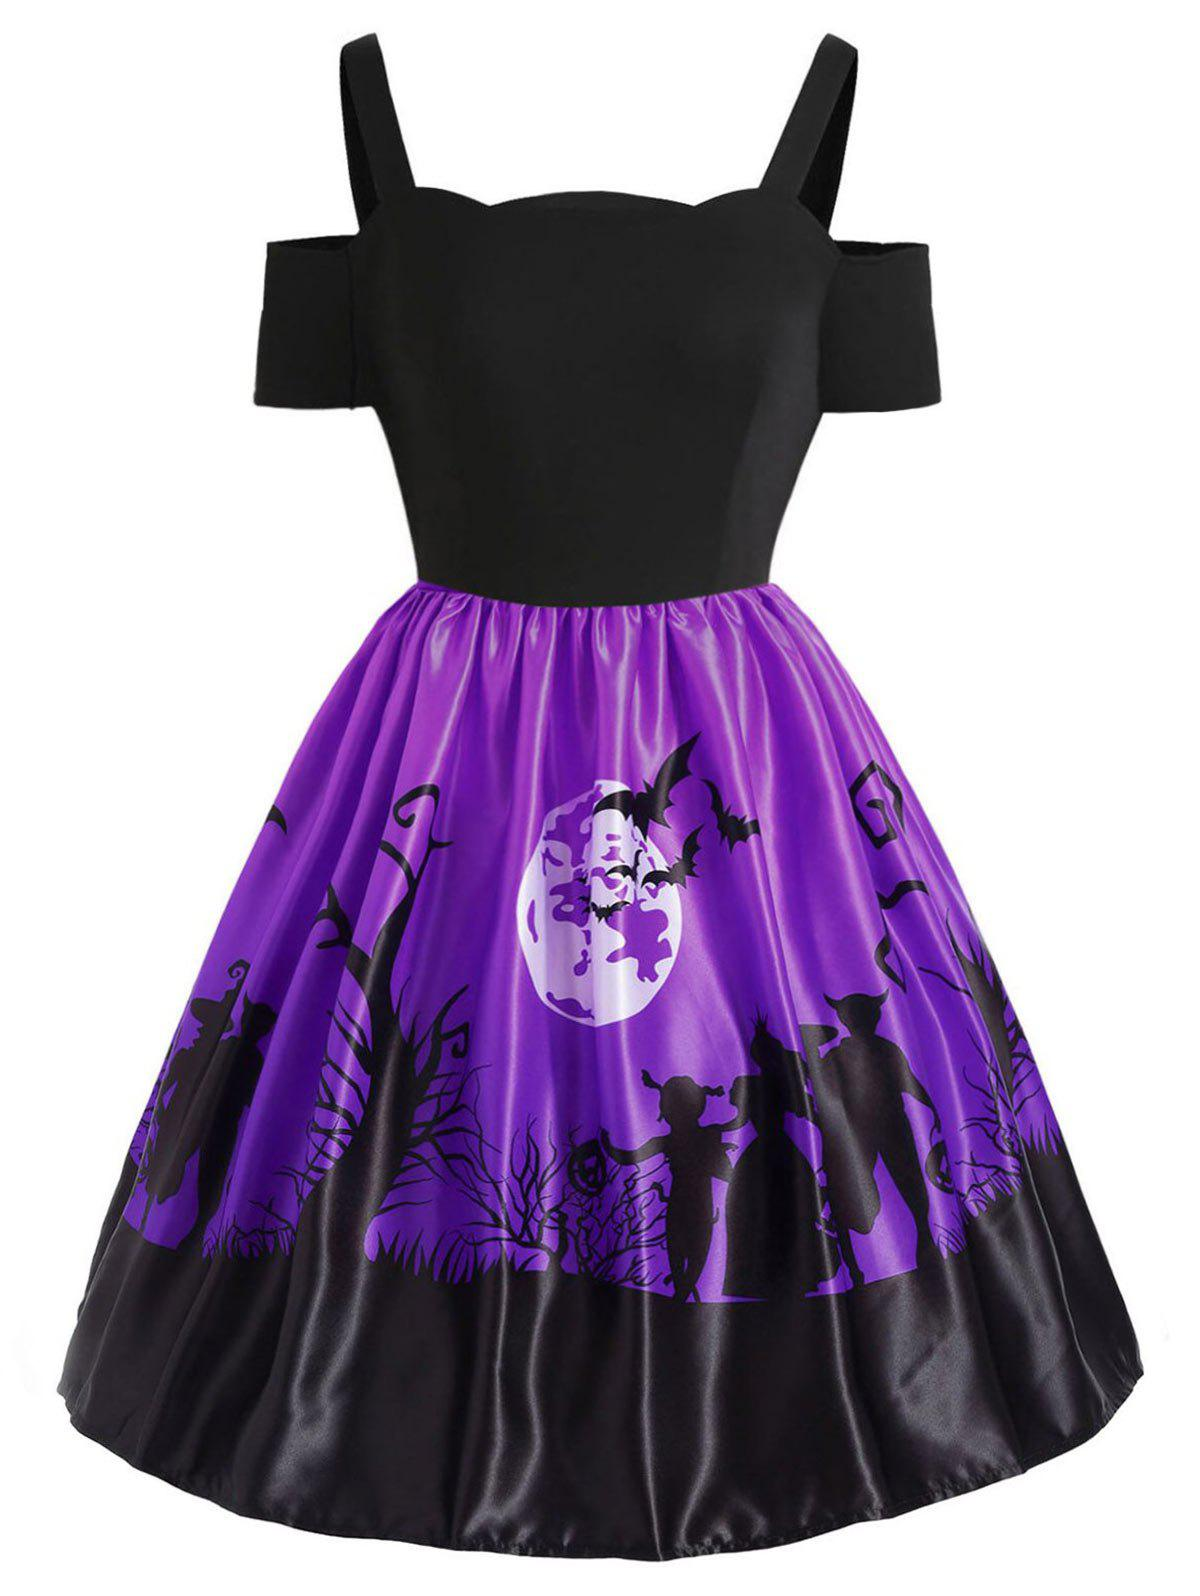 Plus Size Cut Out Halloween Dress - PURPLE 5X